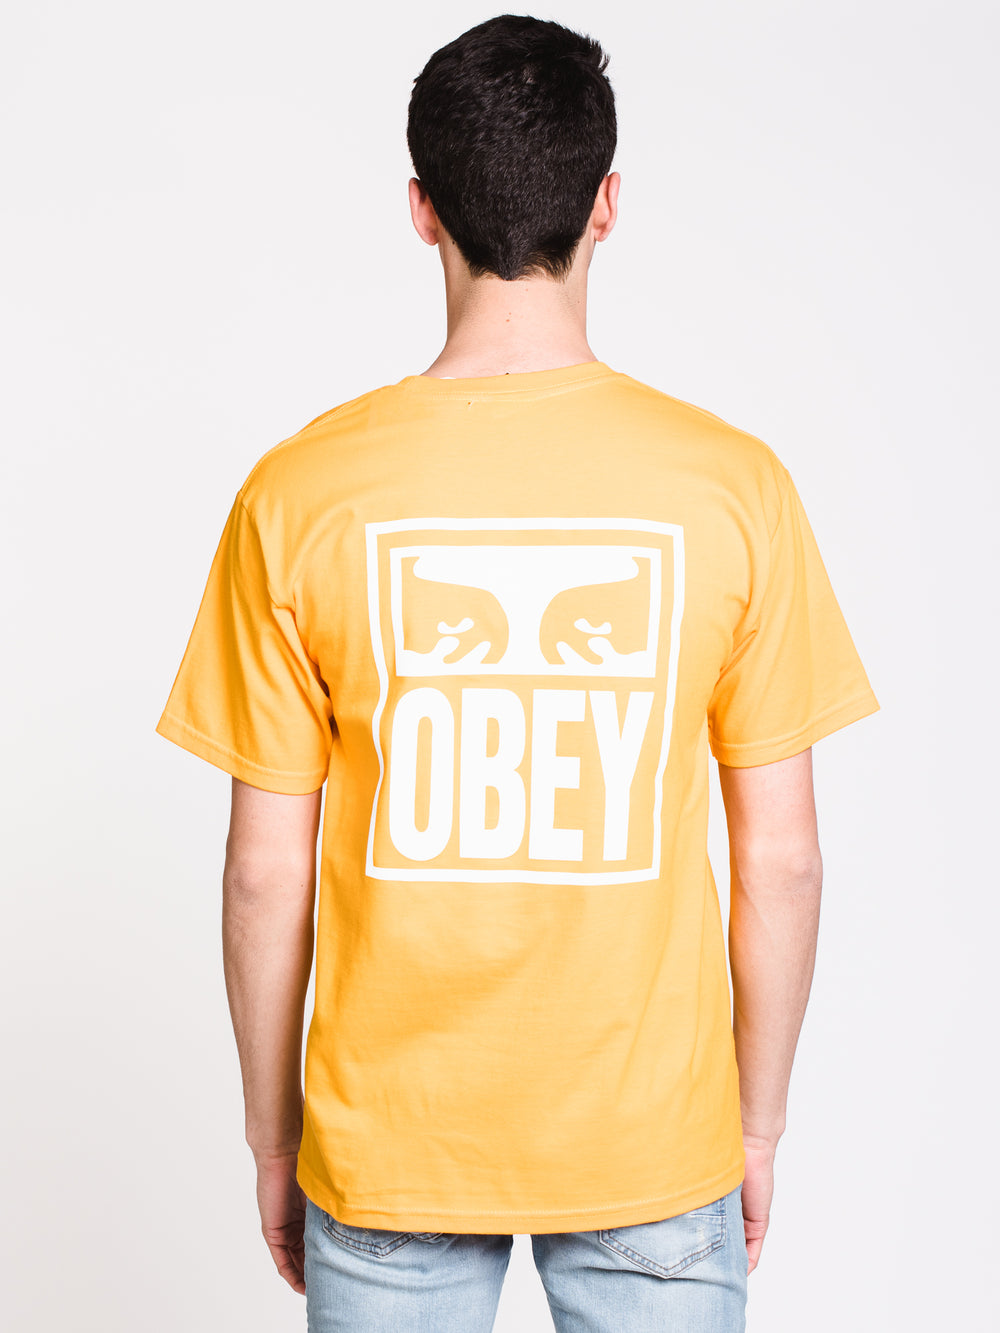 c43d93ee MENS OBEY EYES ICON SHORT SLEEVE T-SHIRT - GOLD